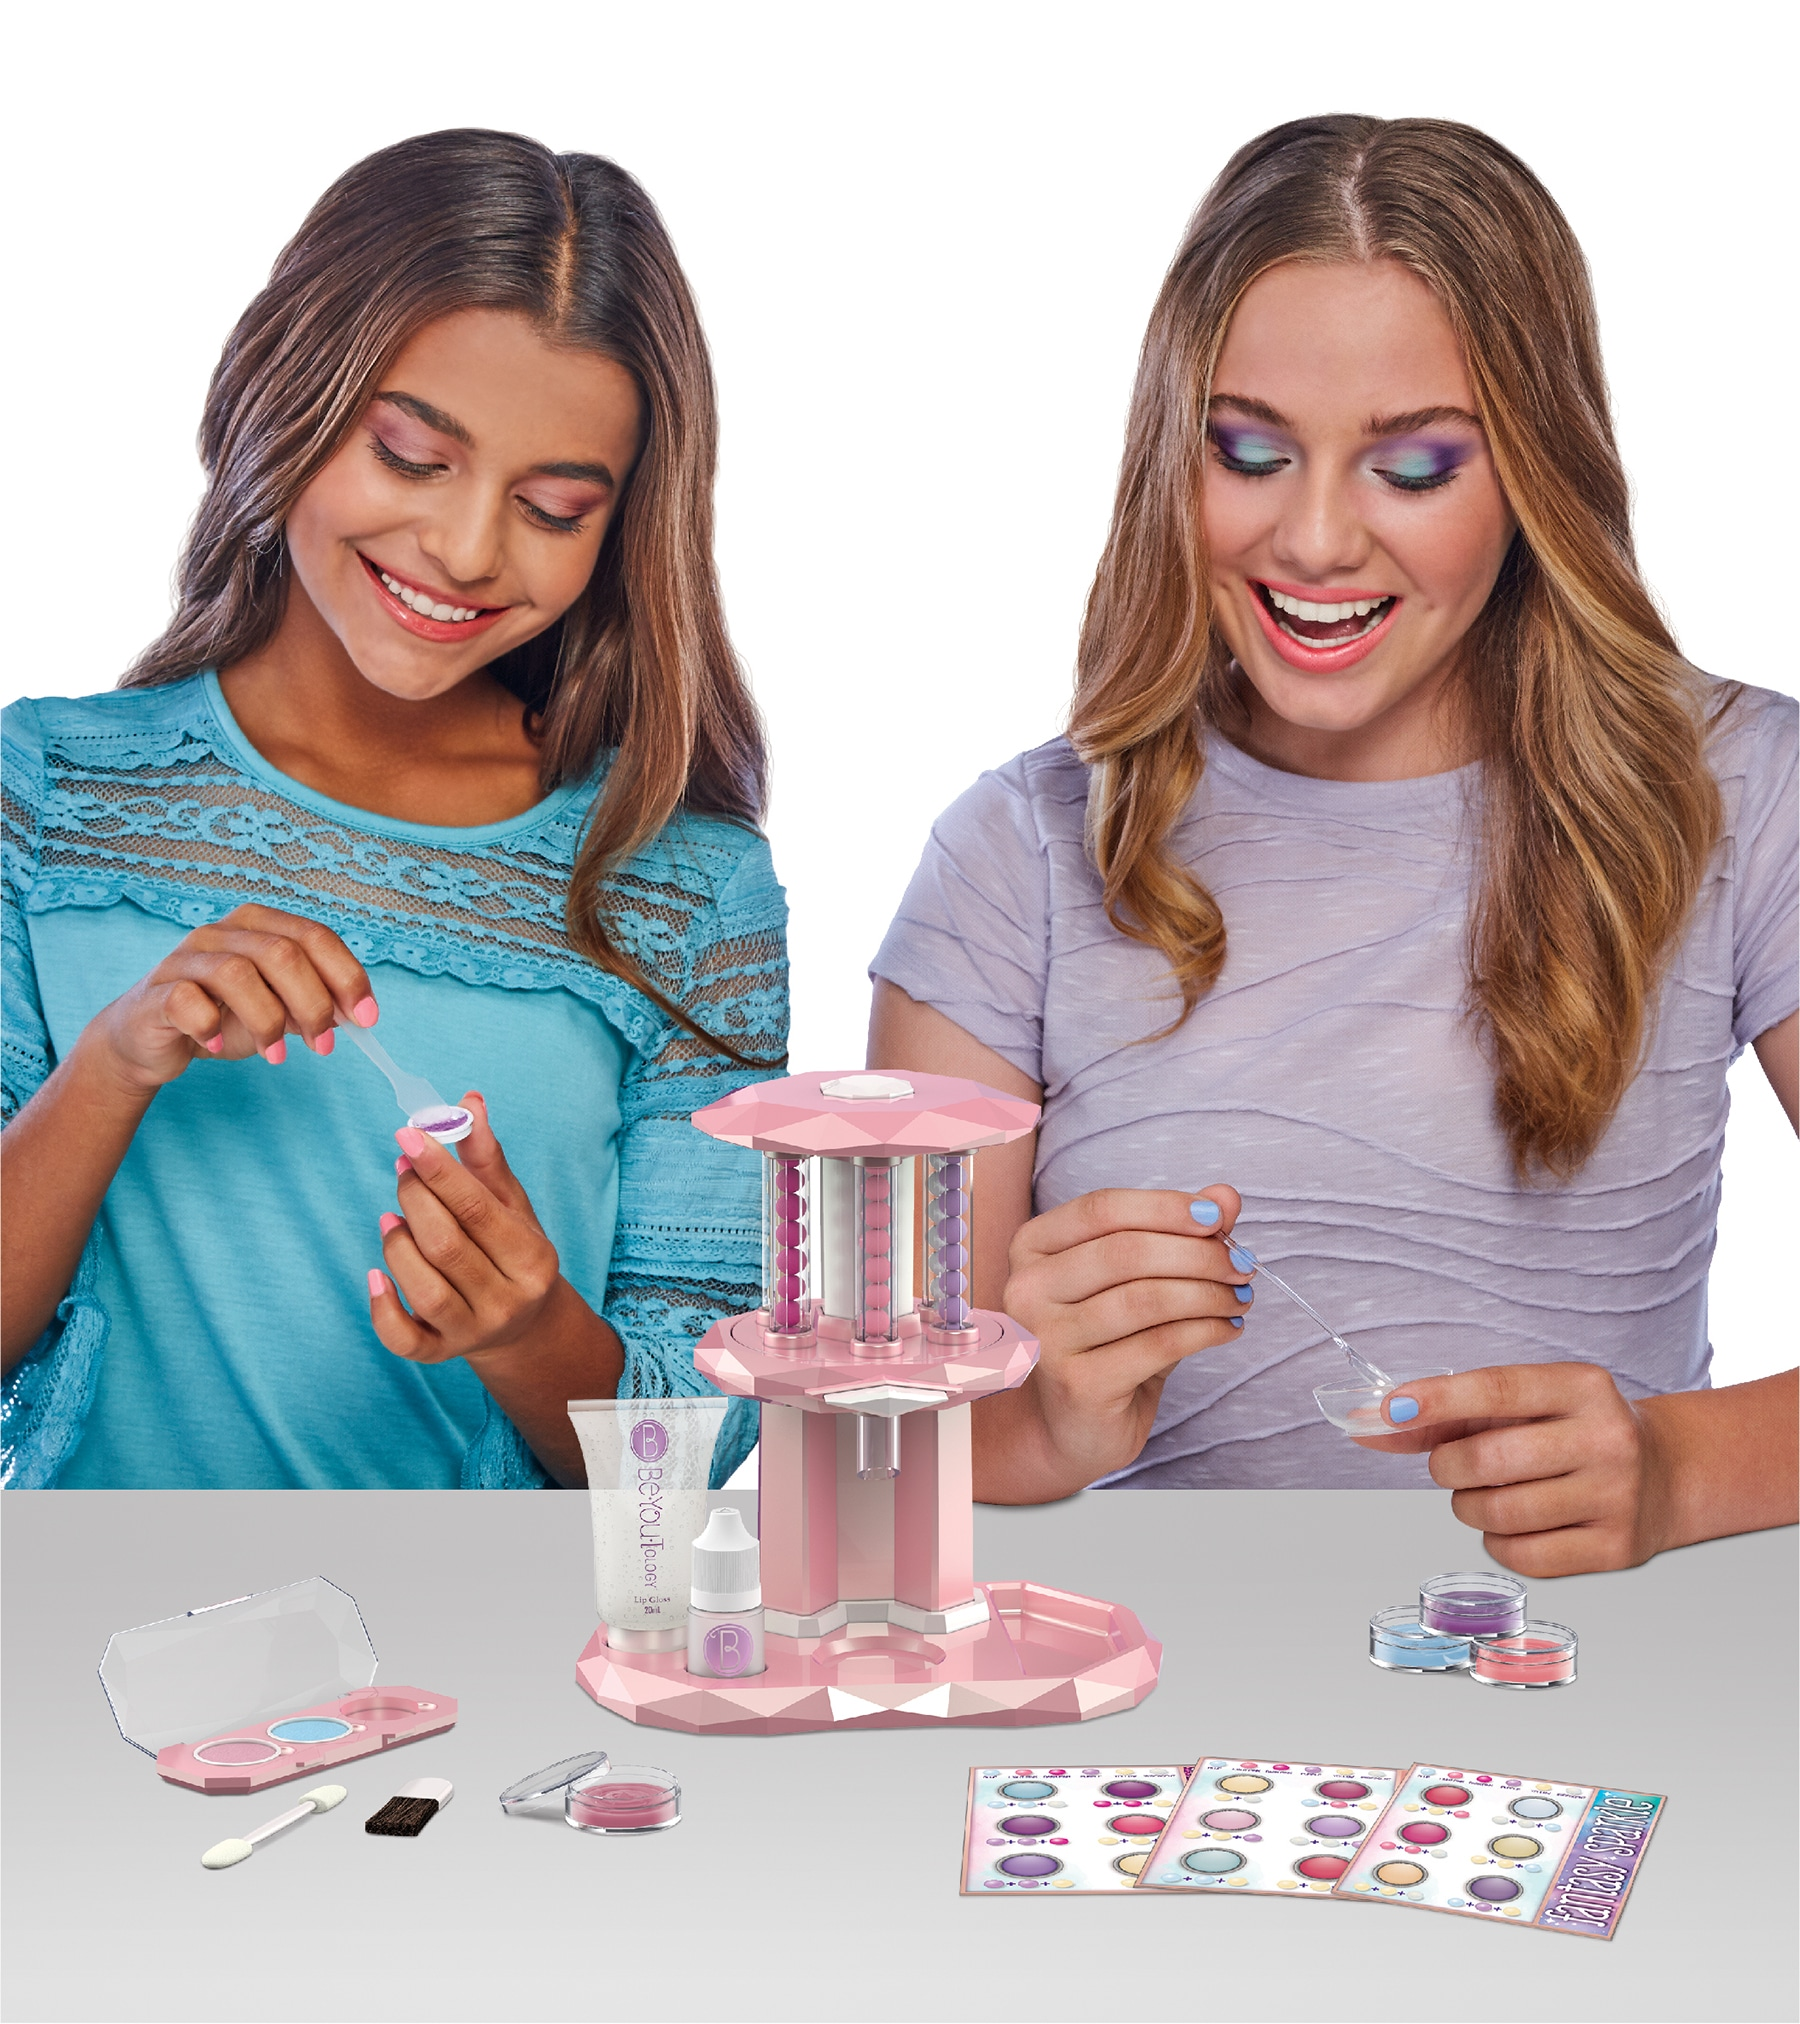 BeYouTology Create Your Own Luxe Cosmetic Bar Kit. Girls will love creating their own makeup with the Luxe Cosmetic Bar! Experiment and develop personalized shades of face, lip, and eye makeup Crush the color pearls of your choice to make totally unique shades. Create all kinds of personalized makeup for yourself and for friends!